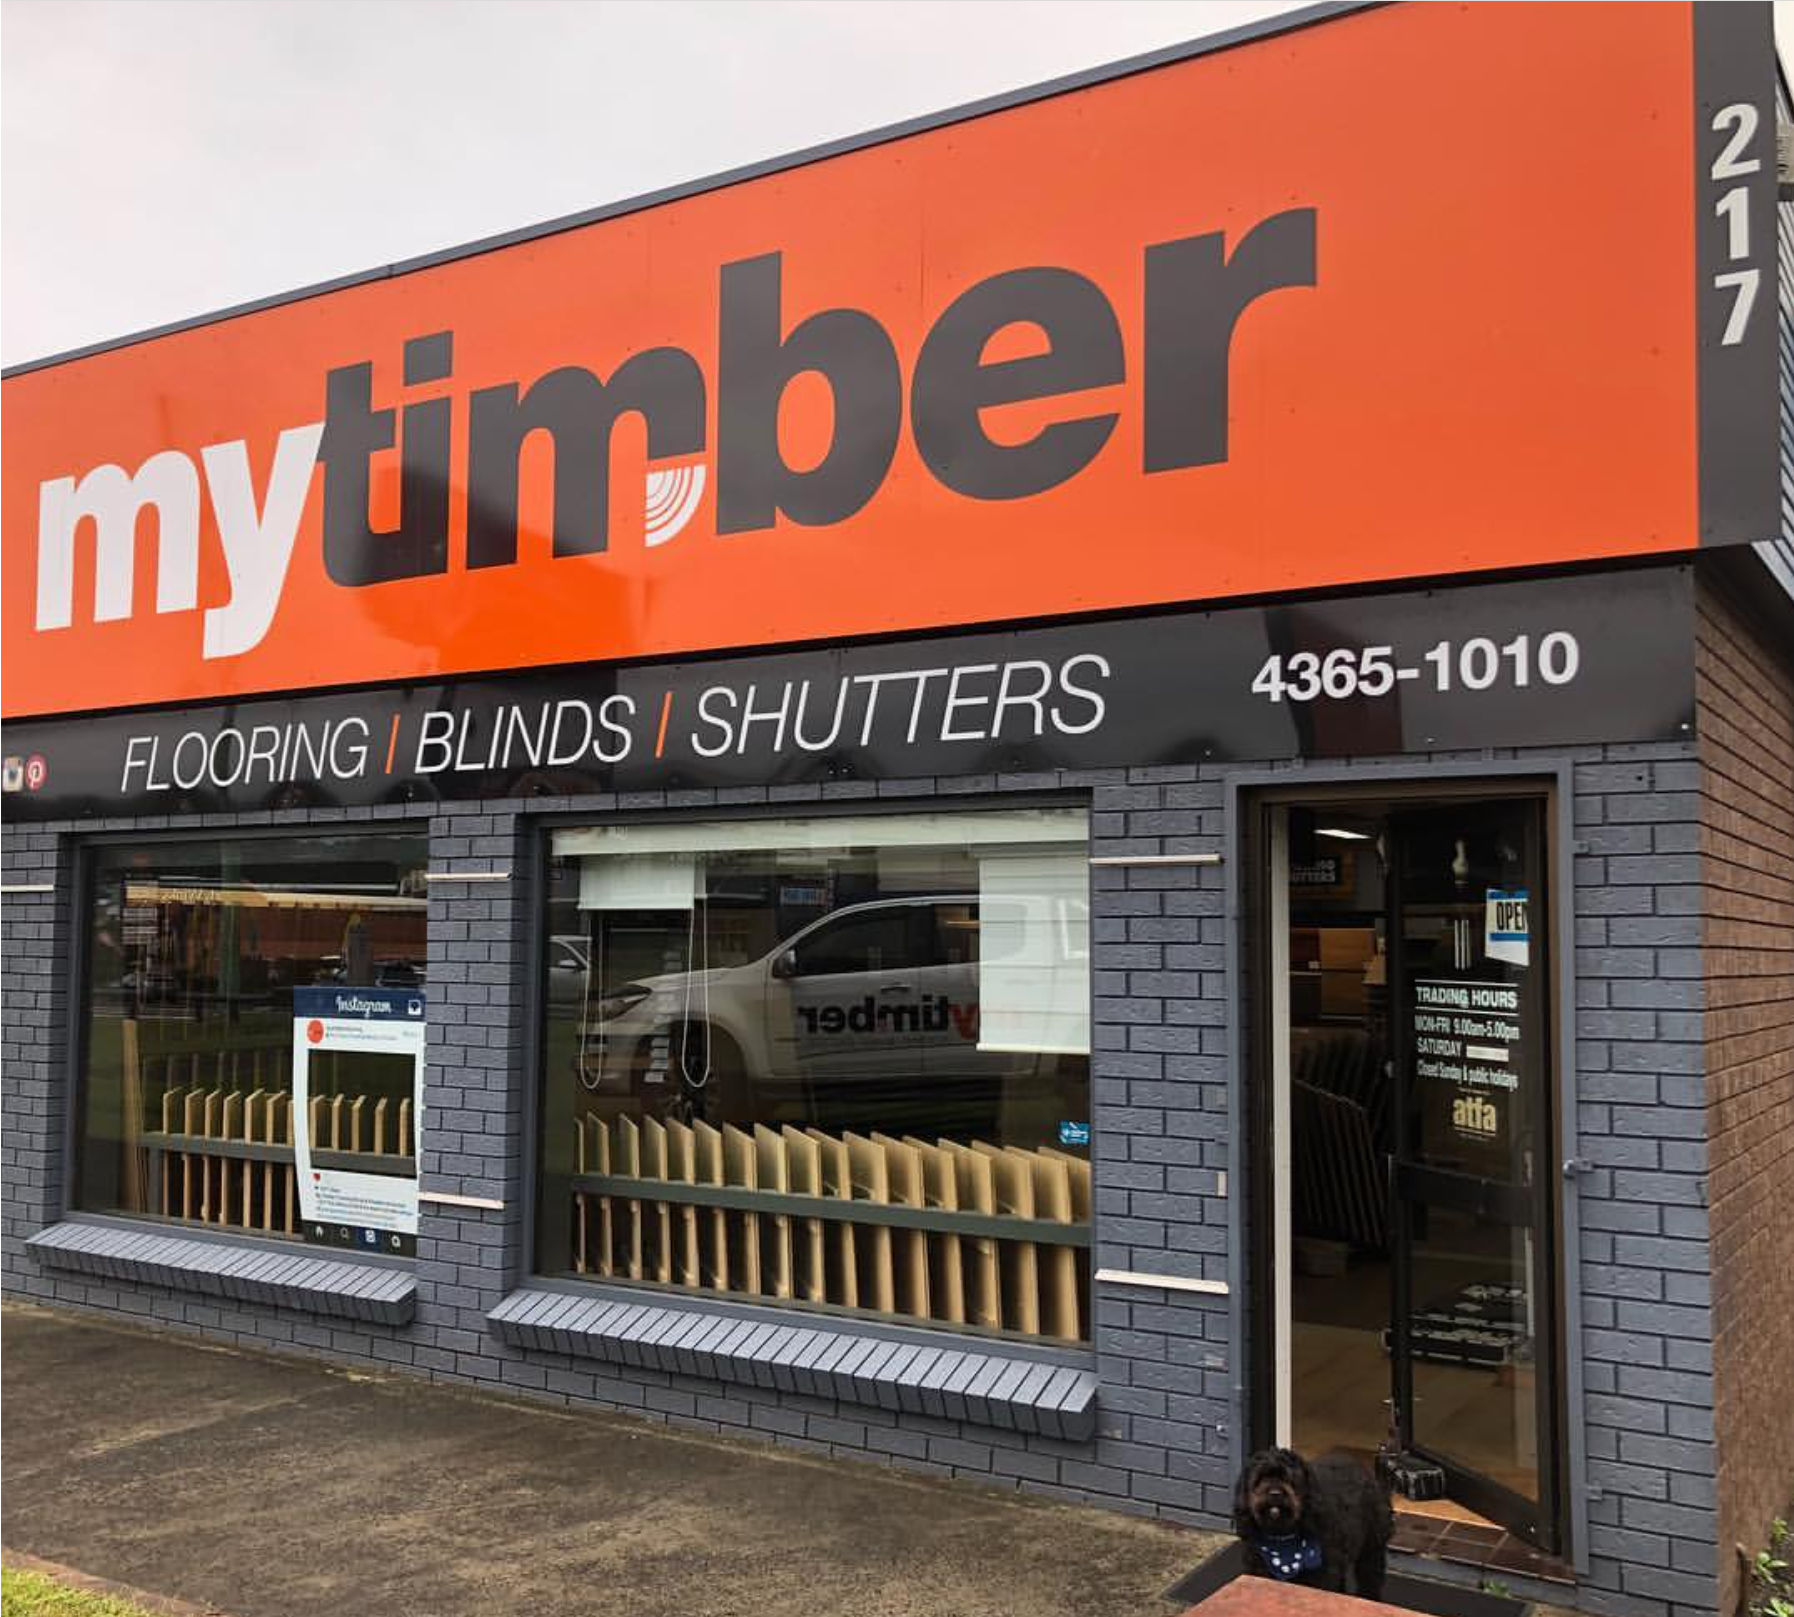 my-timber-flooring-blinds-shutters-shop-